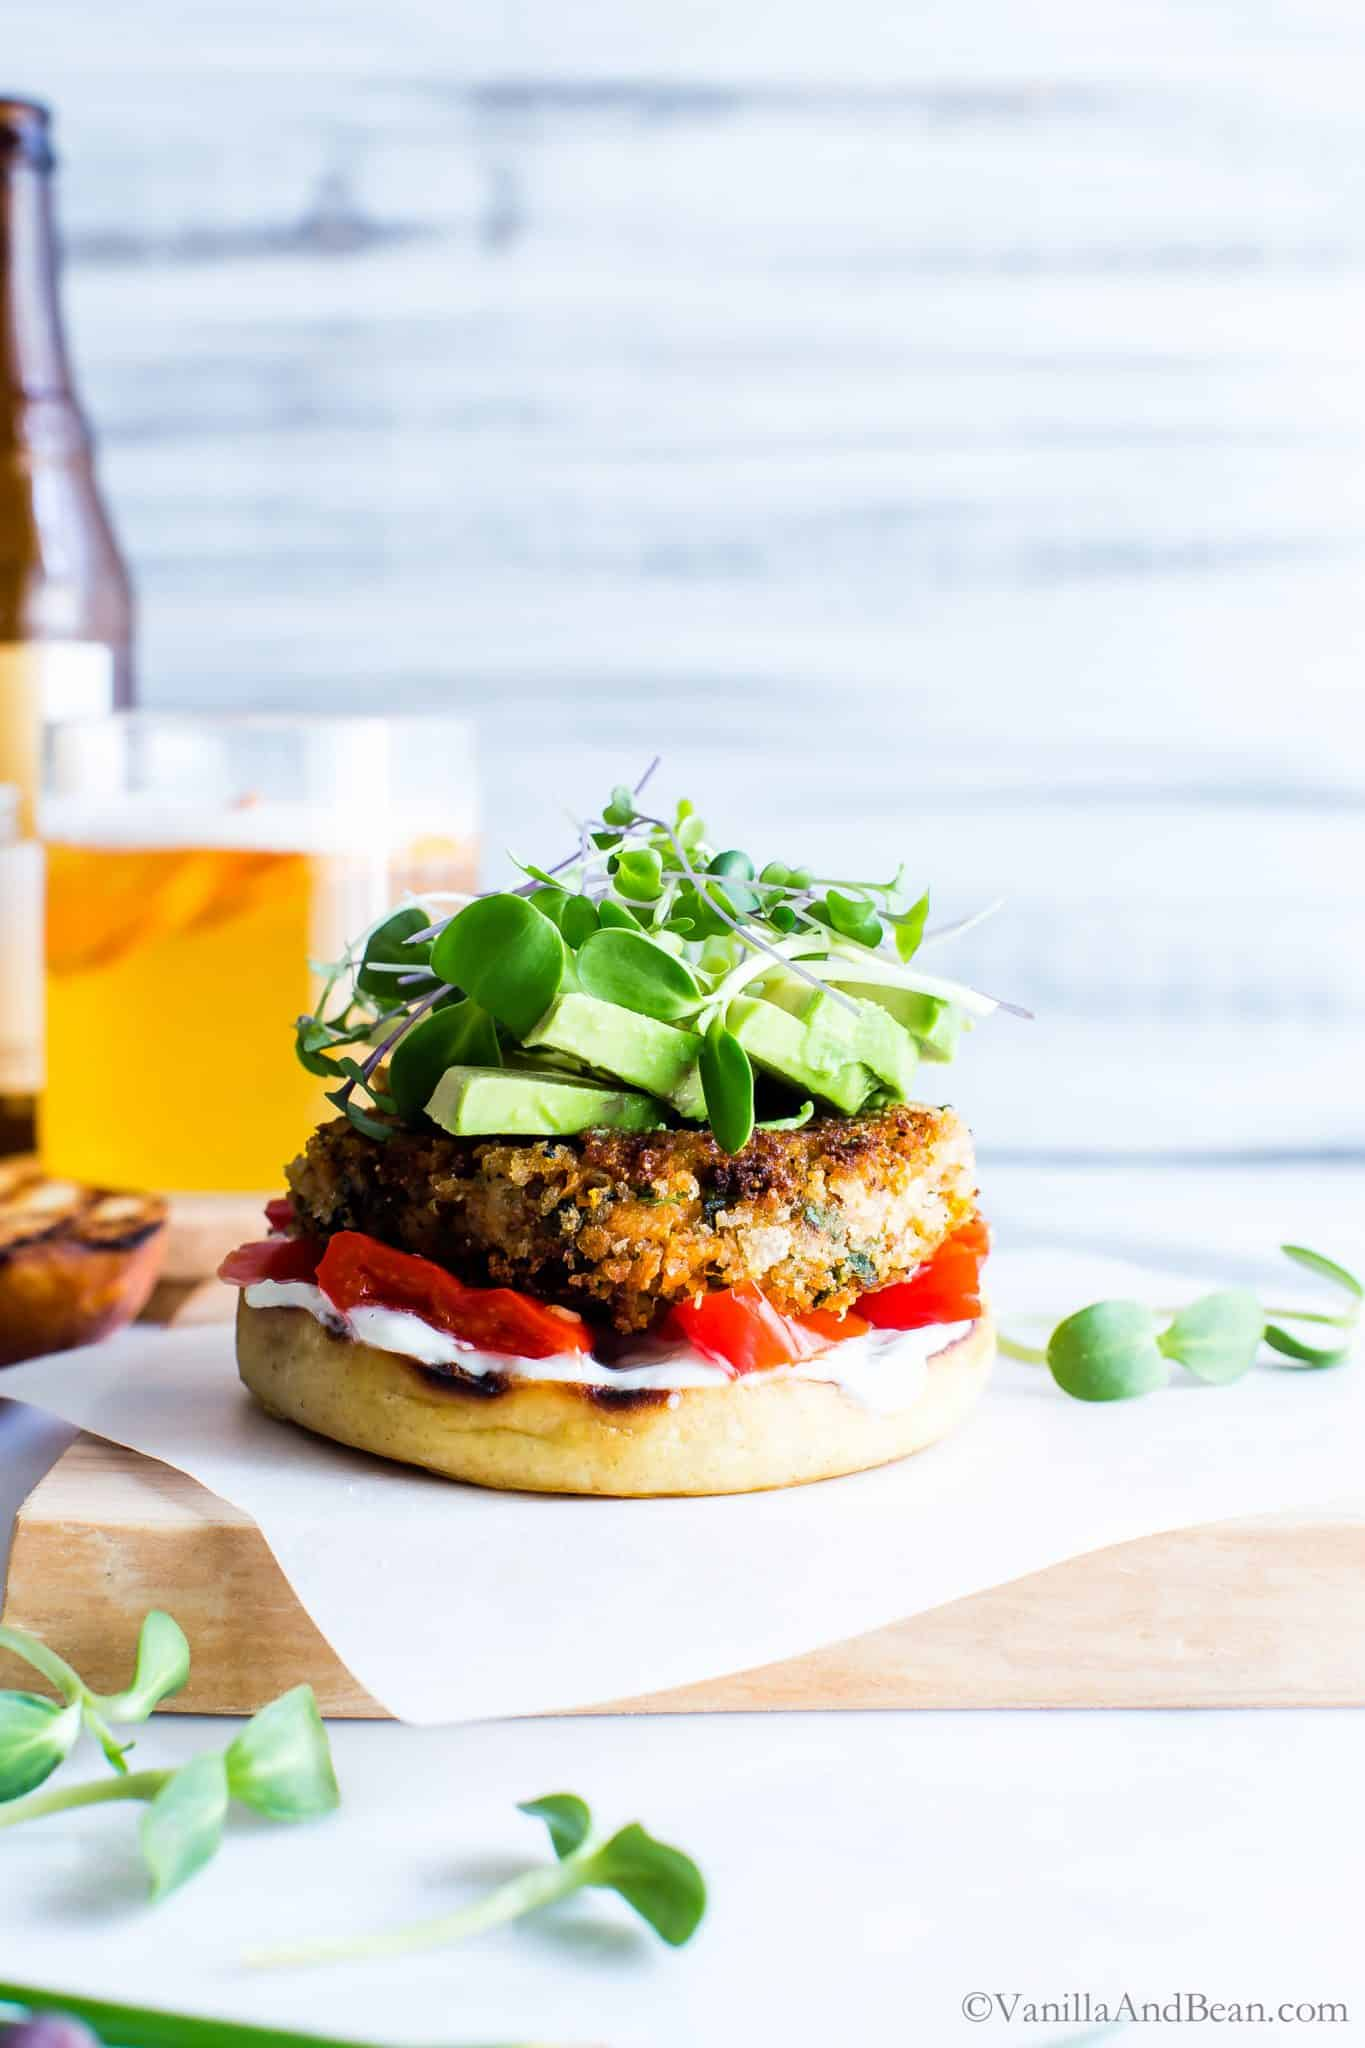 Sweet Potato Burger topped with avocado and sprouts, setting on a cutting board ready to eat.